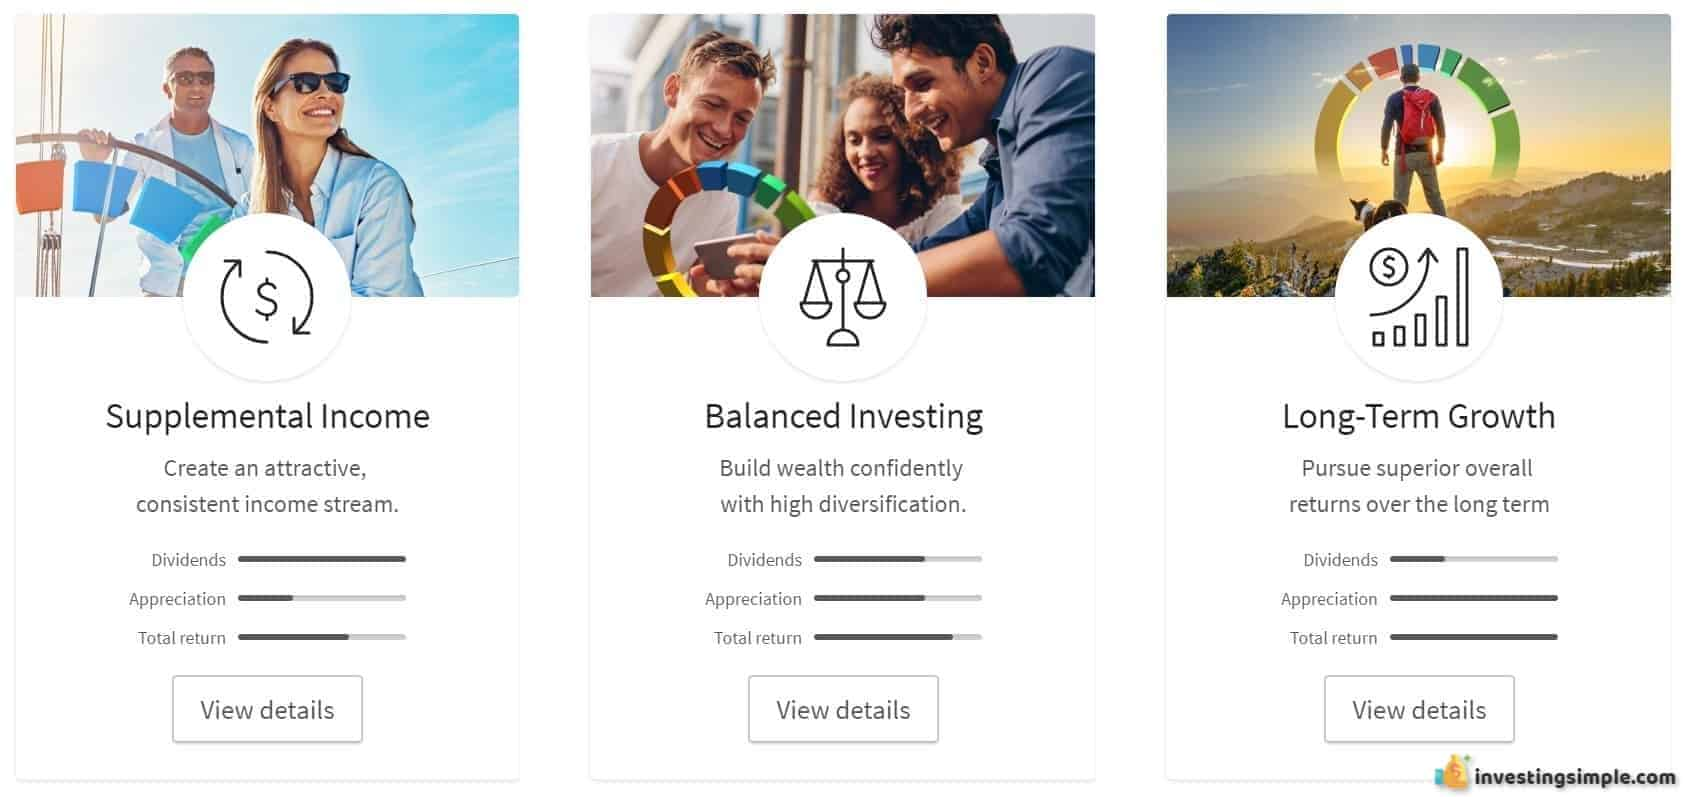 Fundrise investment options include the starter portfolio, the balanced investing portfolio, the growth portfolio, and the income portfolio. Each of these fundrise portfolios have different investment goals.